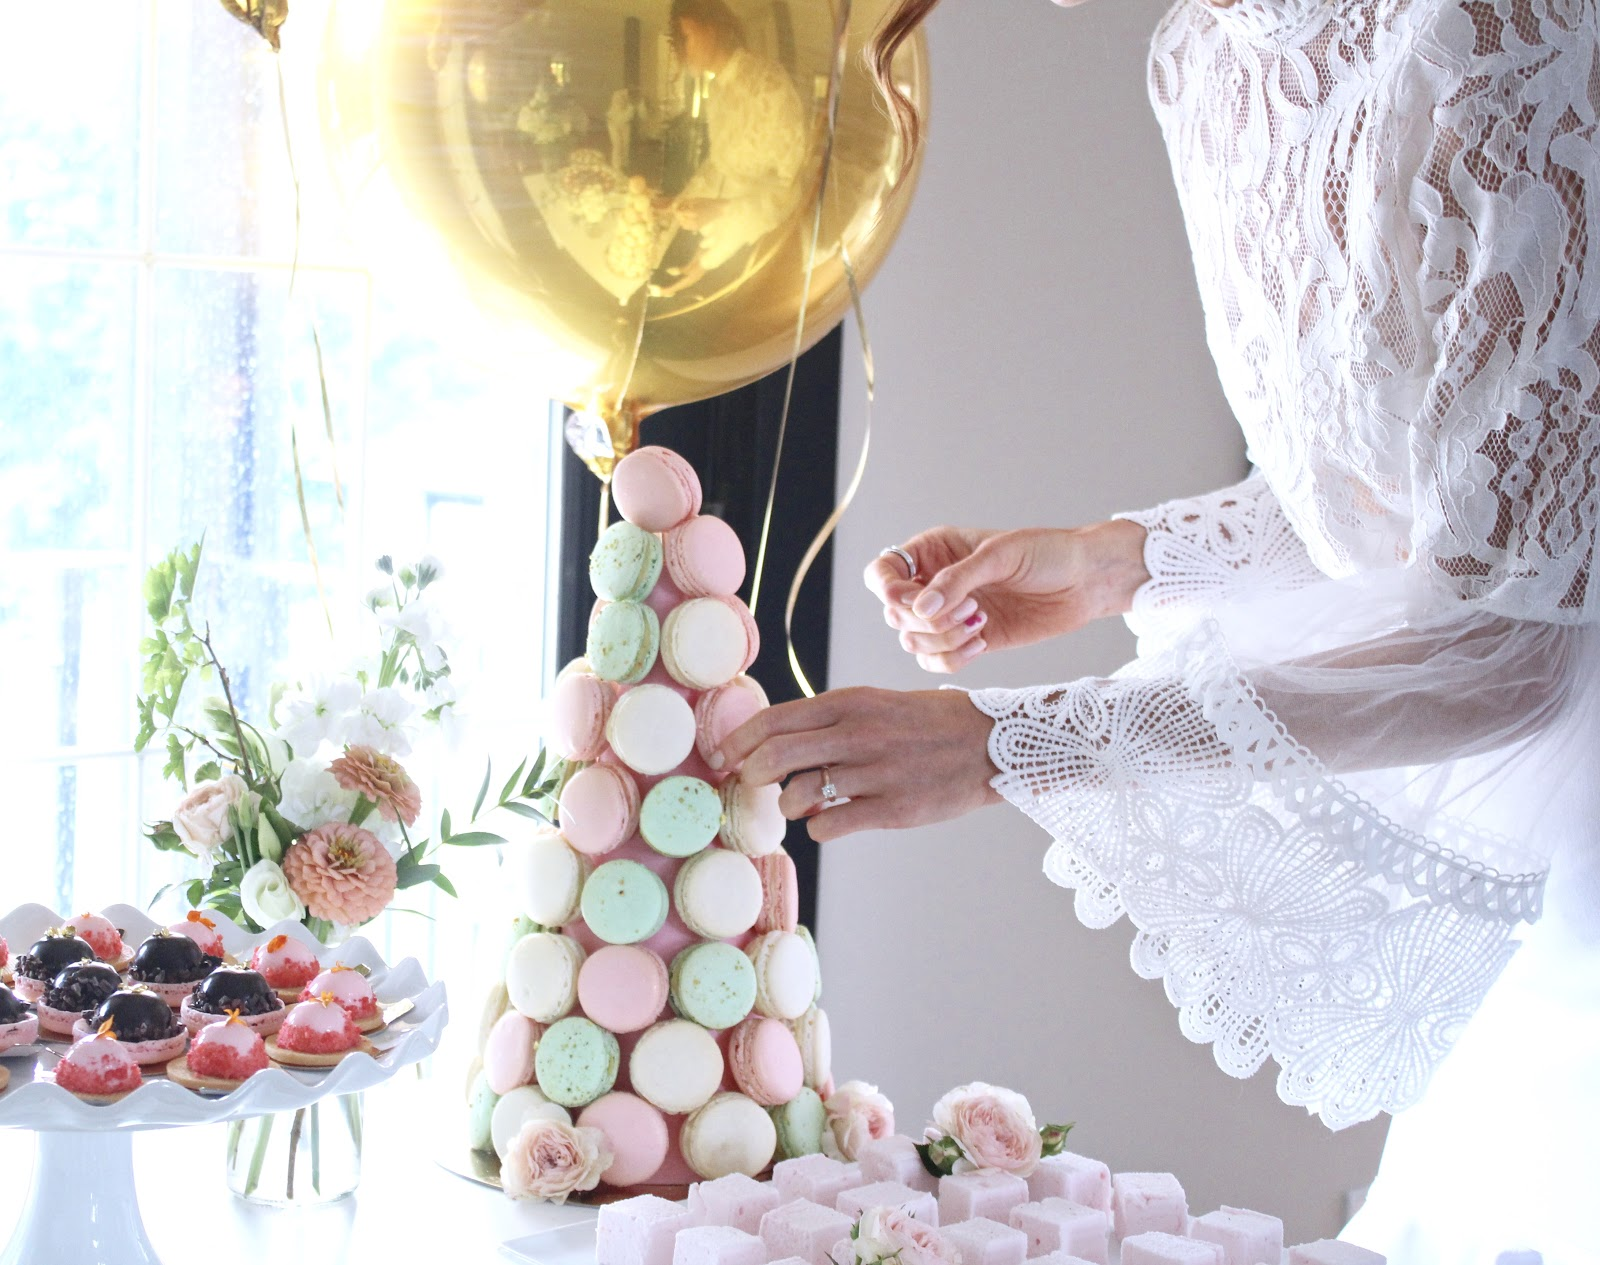 How to Throw a Large Event, Engagement Party Ideas, Summer Engagement Party, Nadege, Sugargirlee, The Fix + Co, Toronto vegan caterer, Honey white engagement outfit, pastels & pastries, GabPacifico wedding, engagement